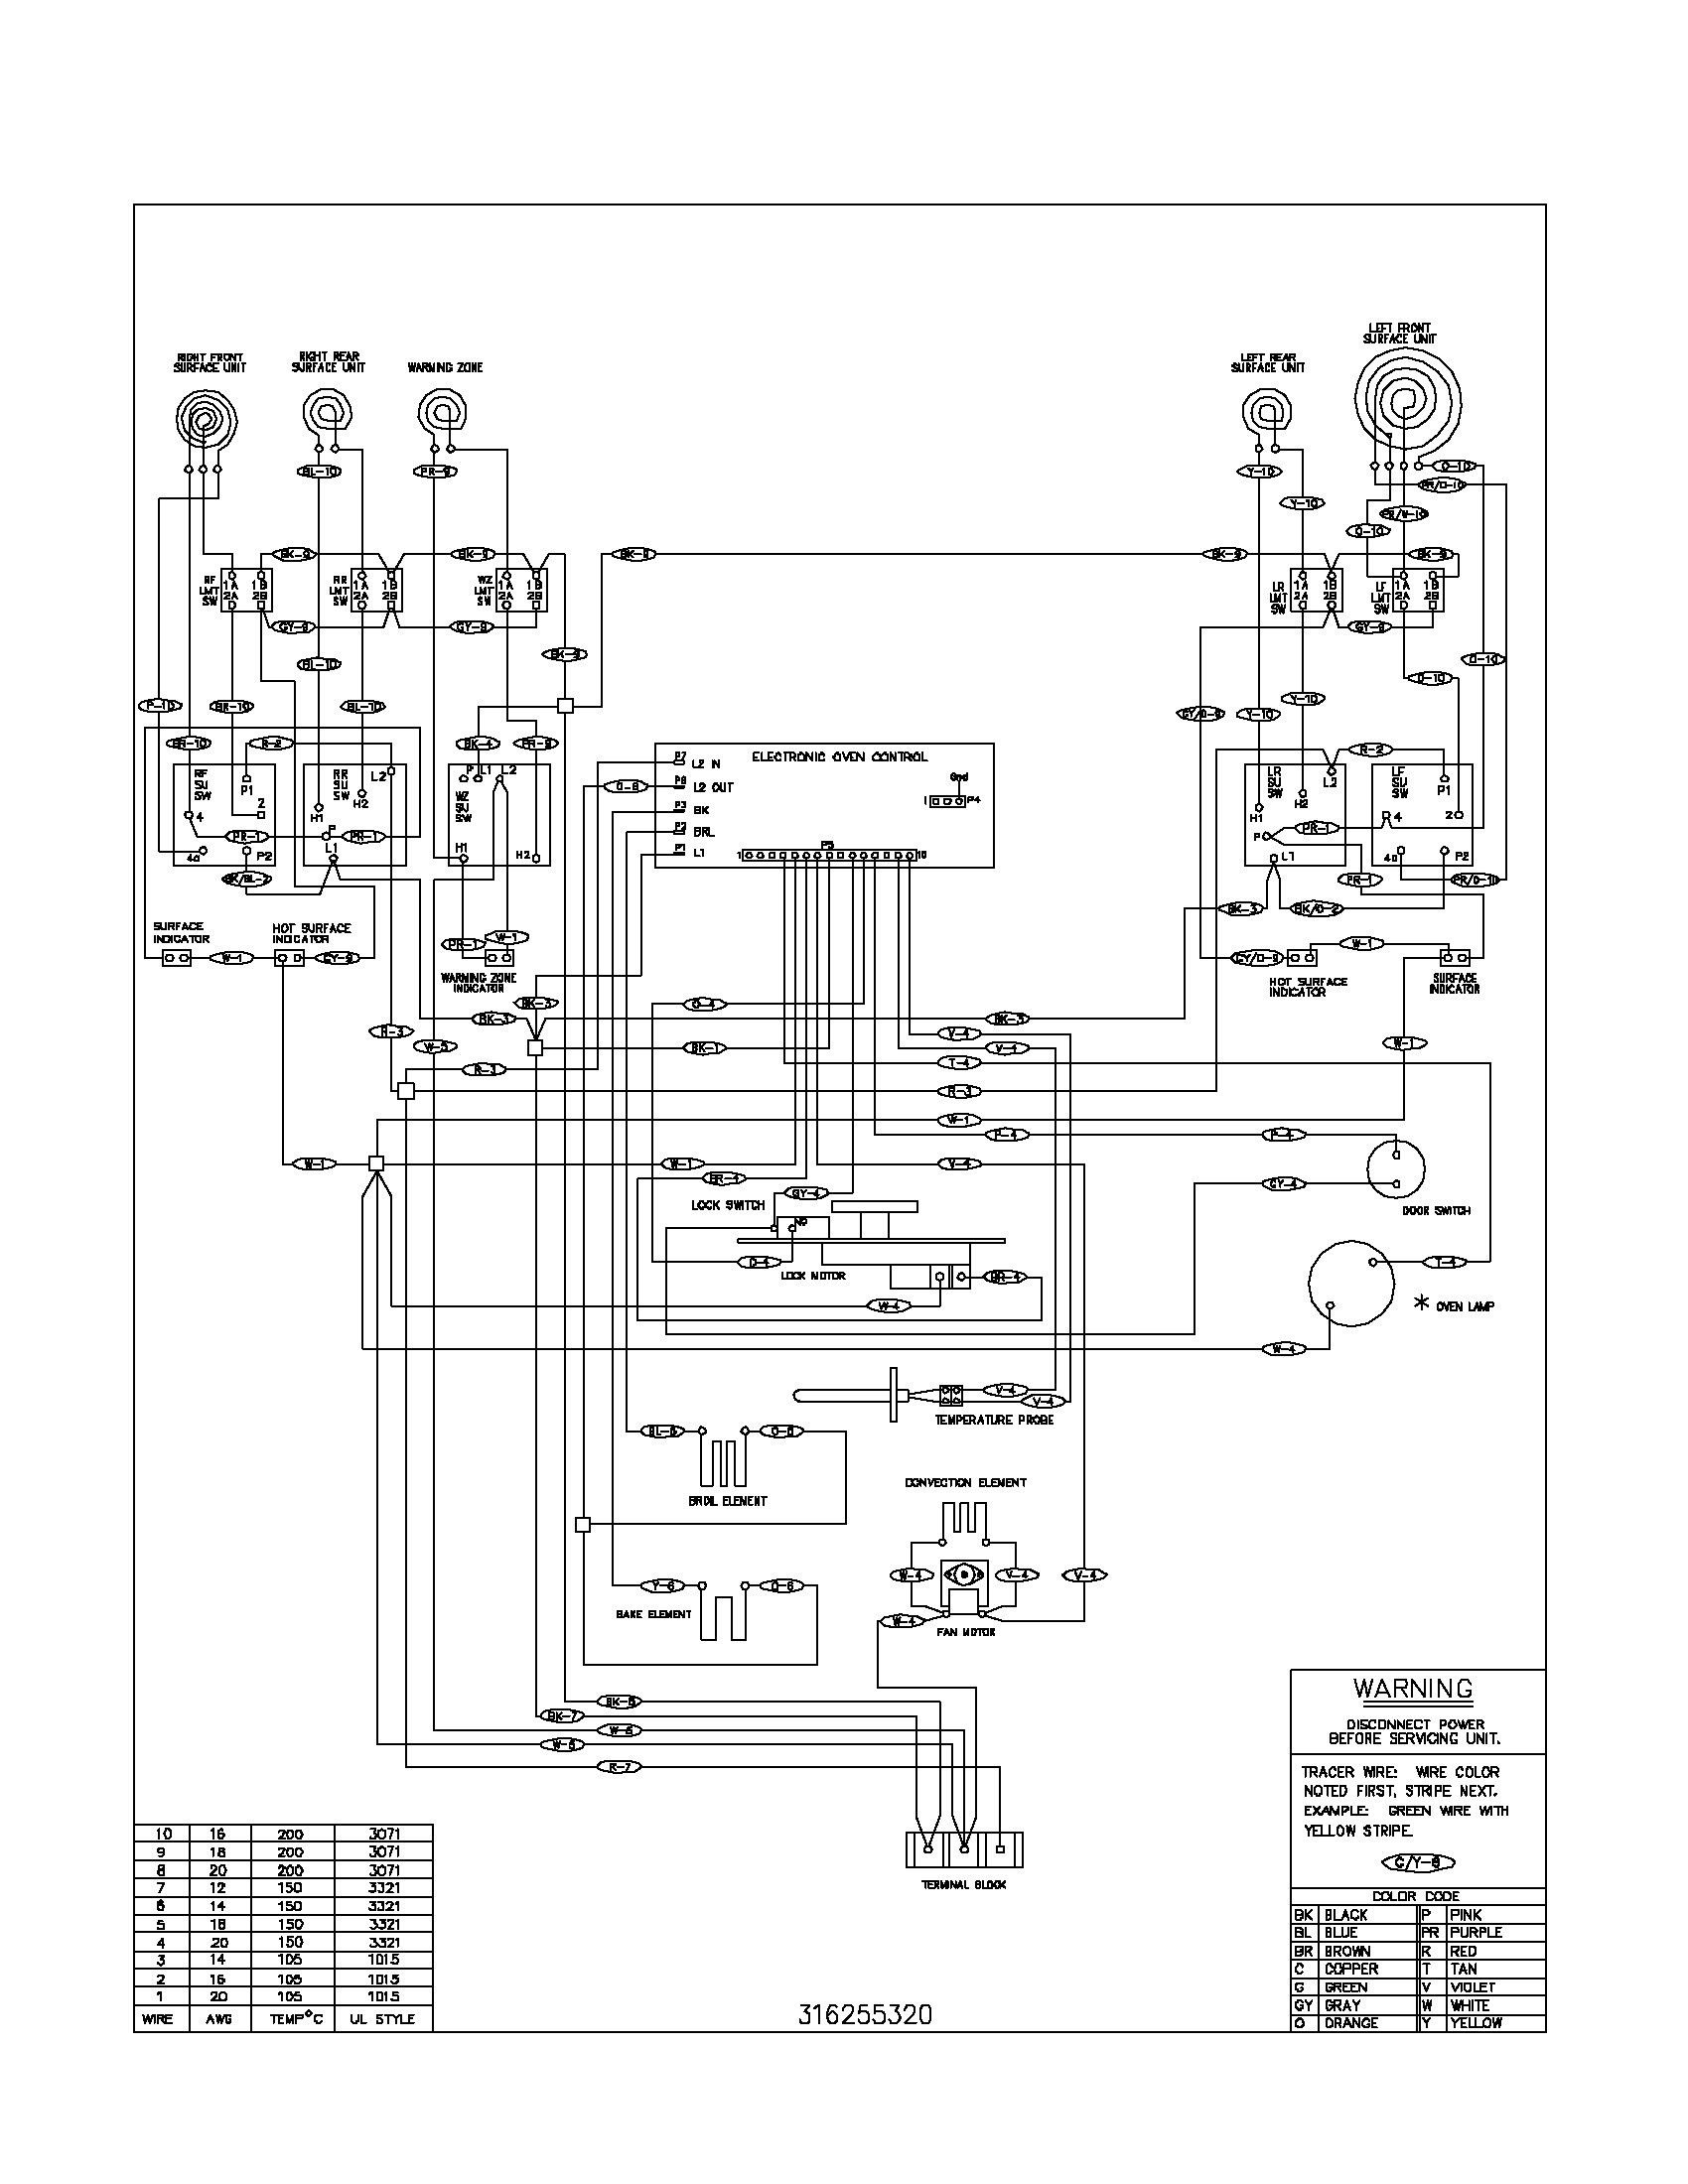 24 wiring diagram for electric stove http